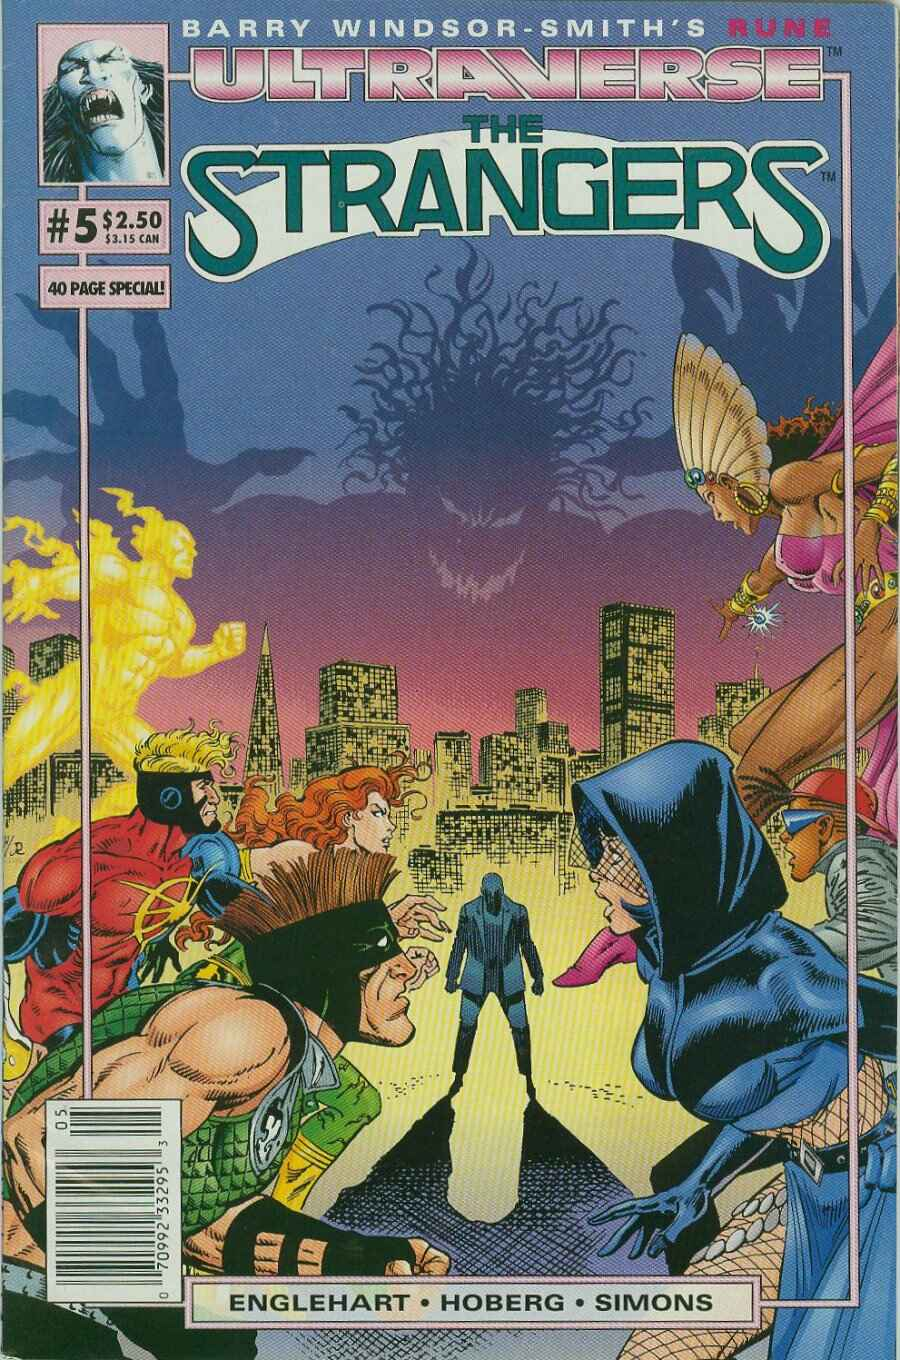 Stranger than fiction from comics to